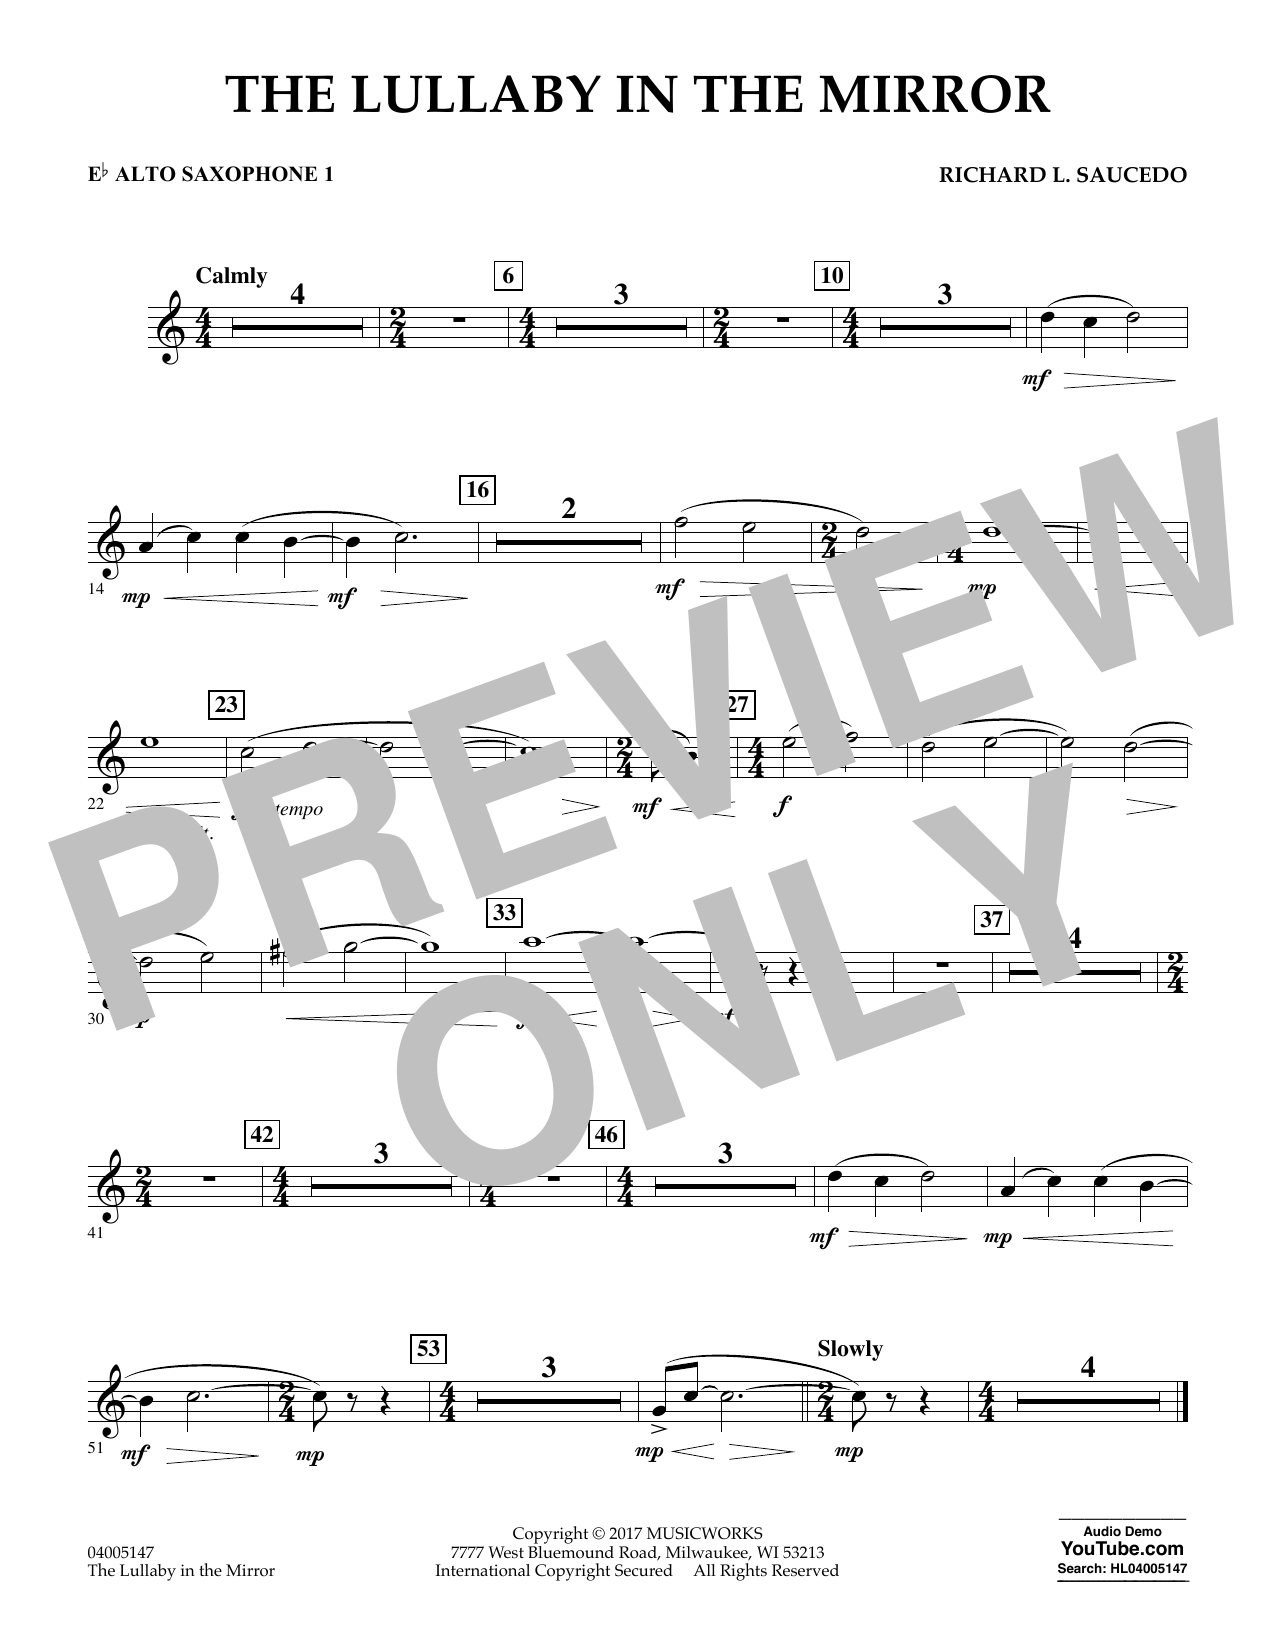 Richard L. Saucedo The Lullaby in the Mirror - Eb Alto Saxophone 1 sheet music notes and chords. Download Printable PDF.